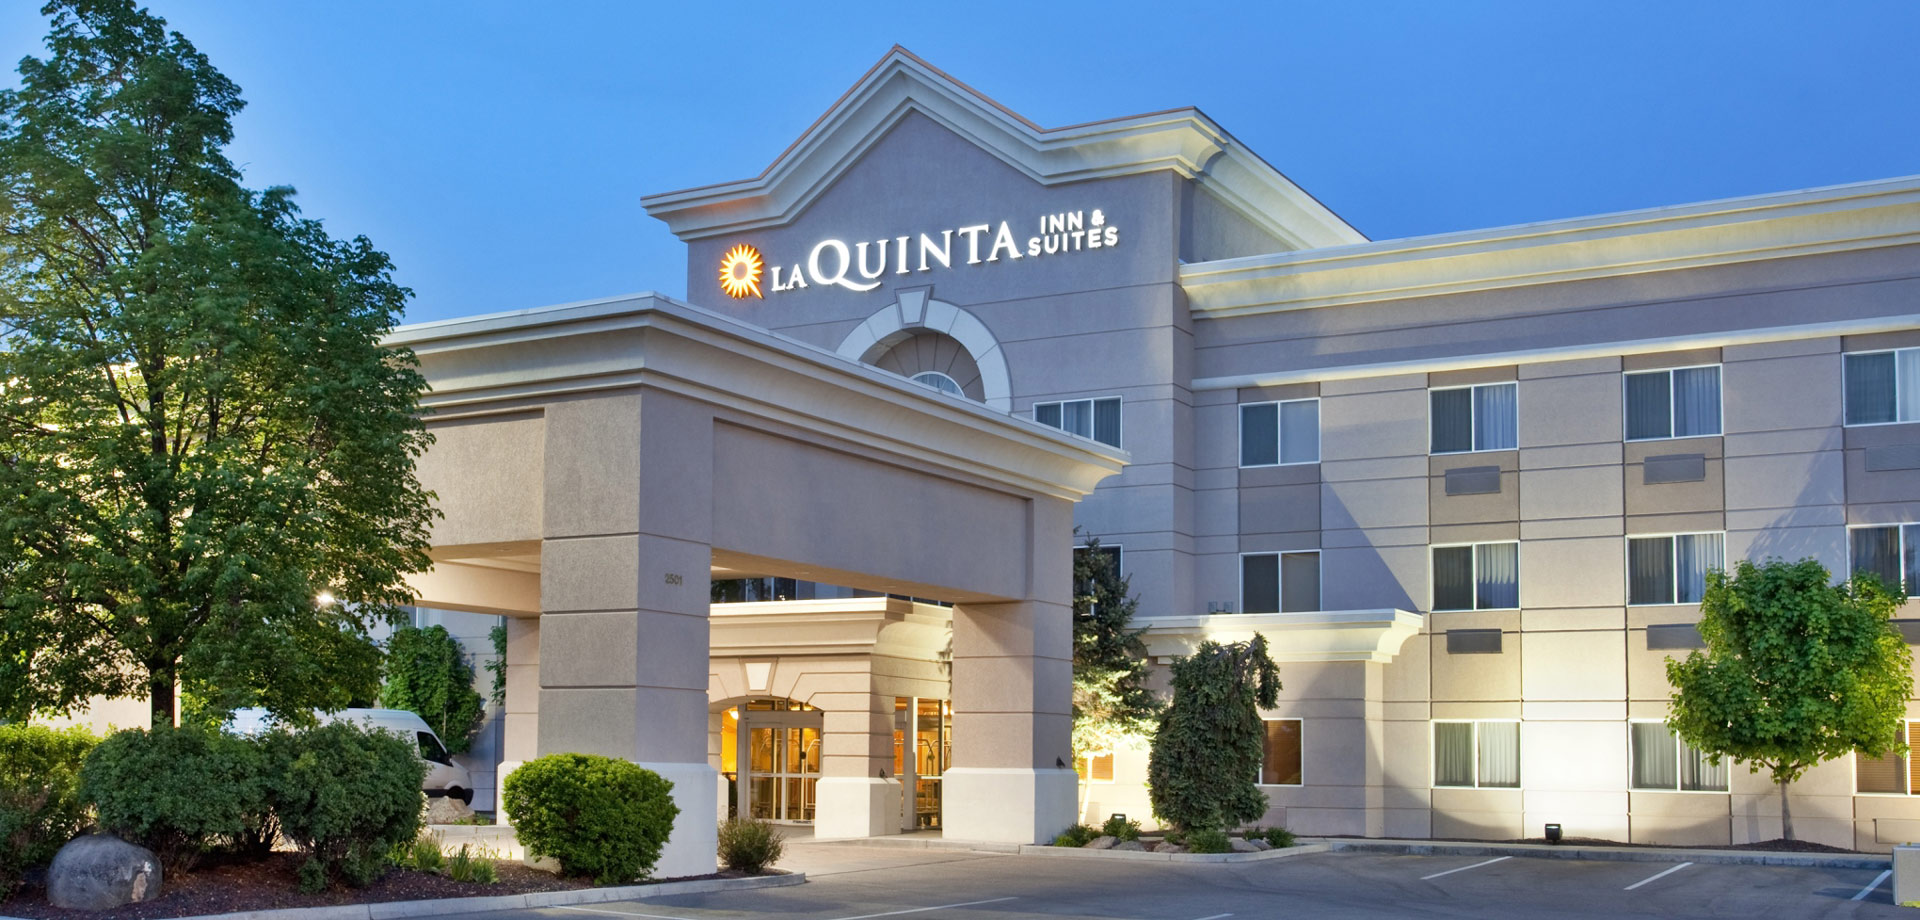 Why La Quinta leadership is upbeat about company's future